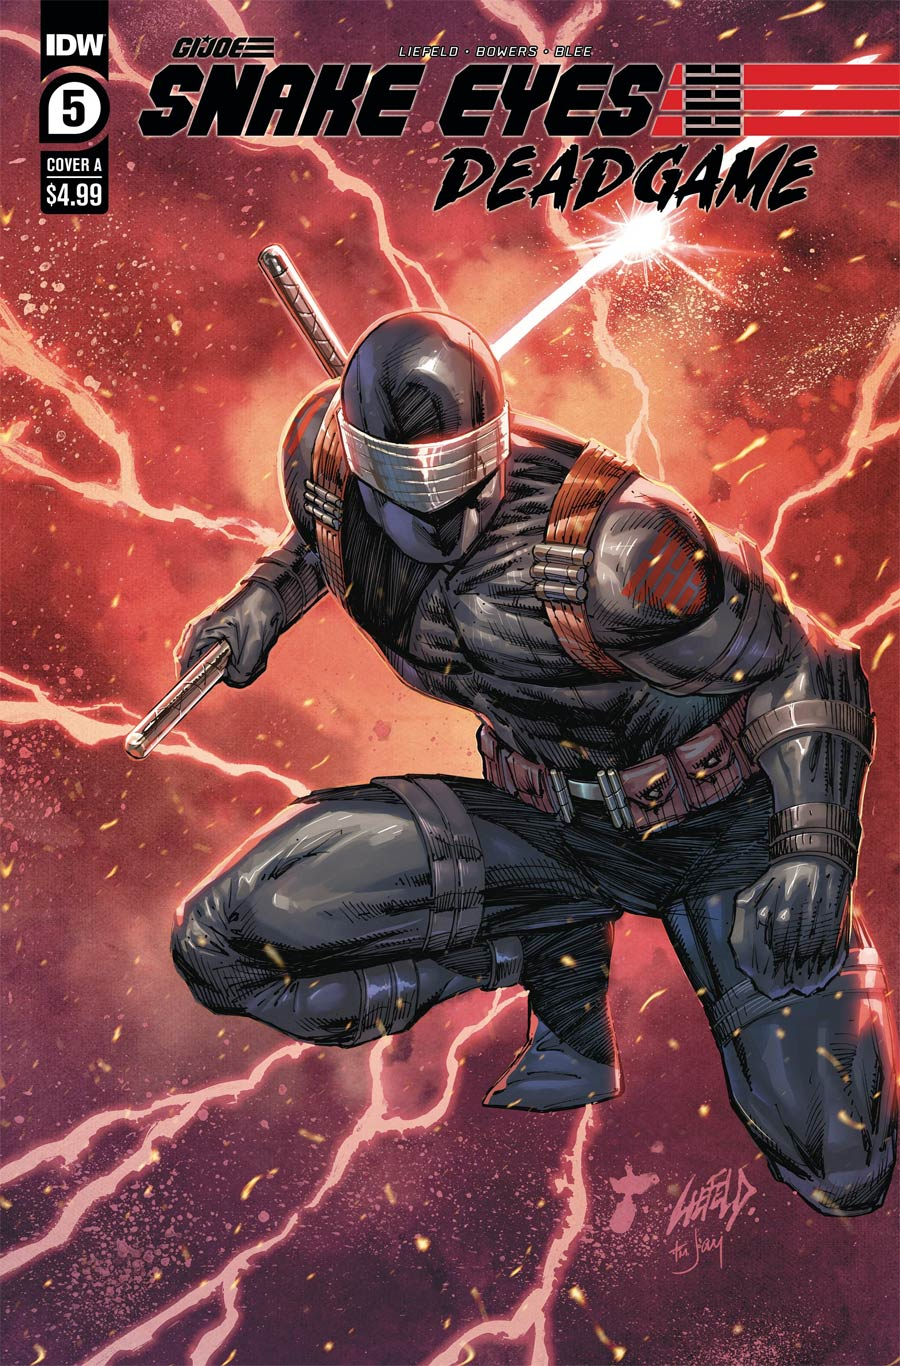 Snake Eyes Deadgame #5 Cover A Regular Rob Liefeld Cover